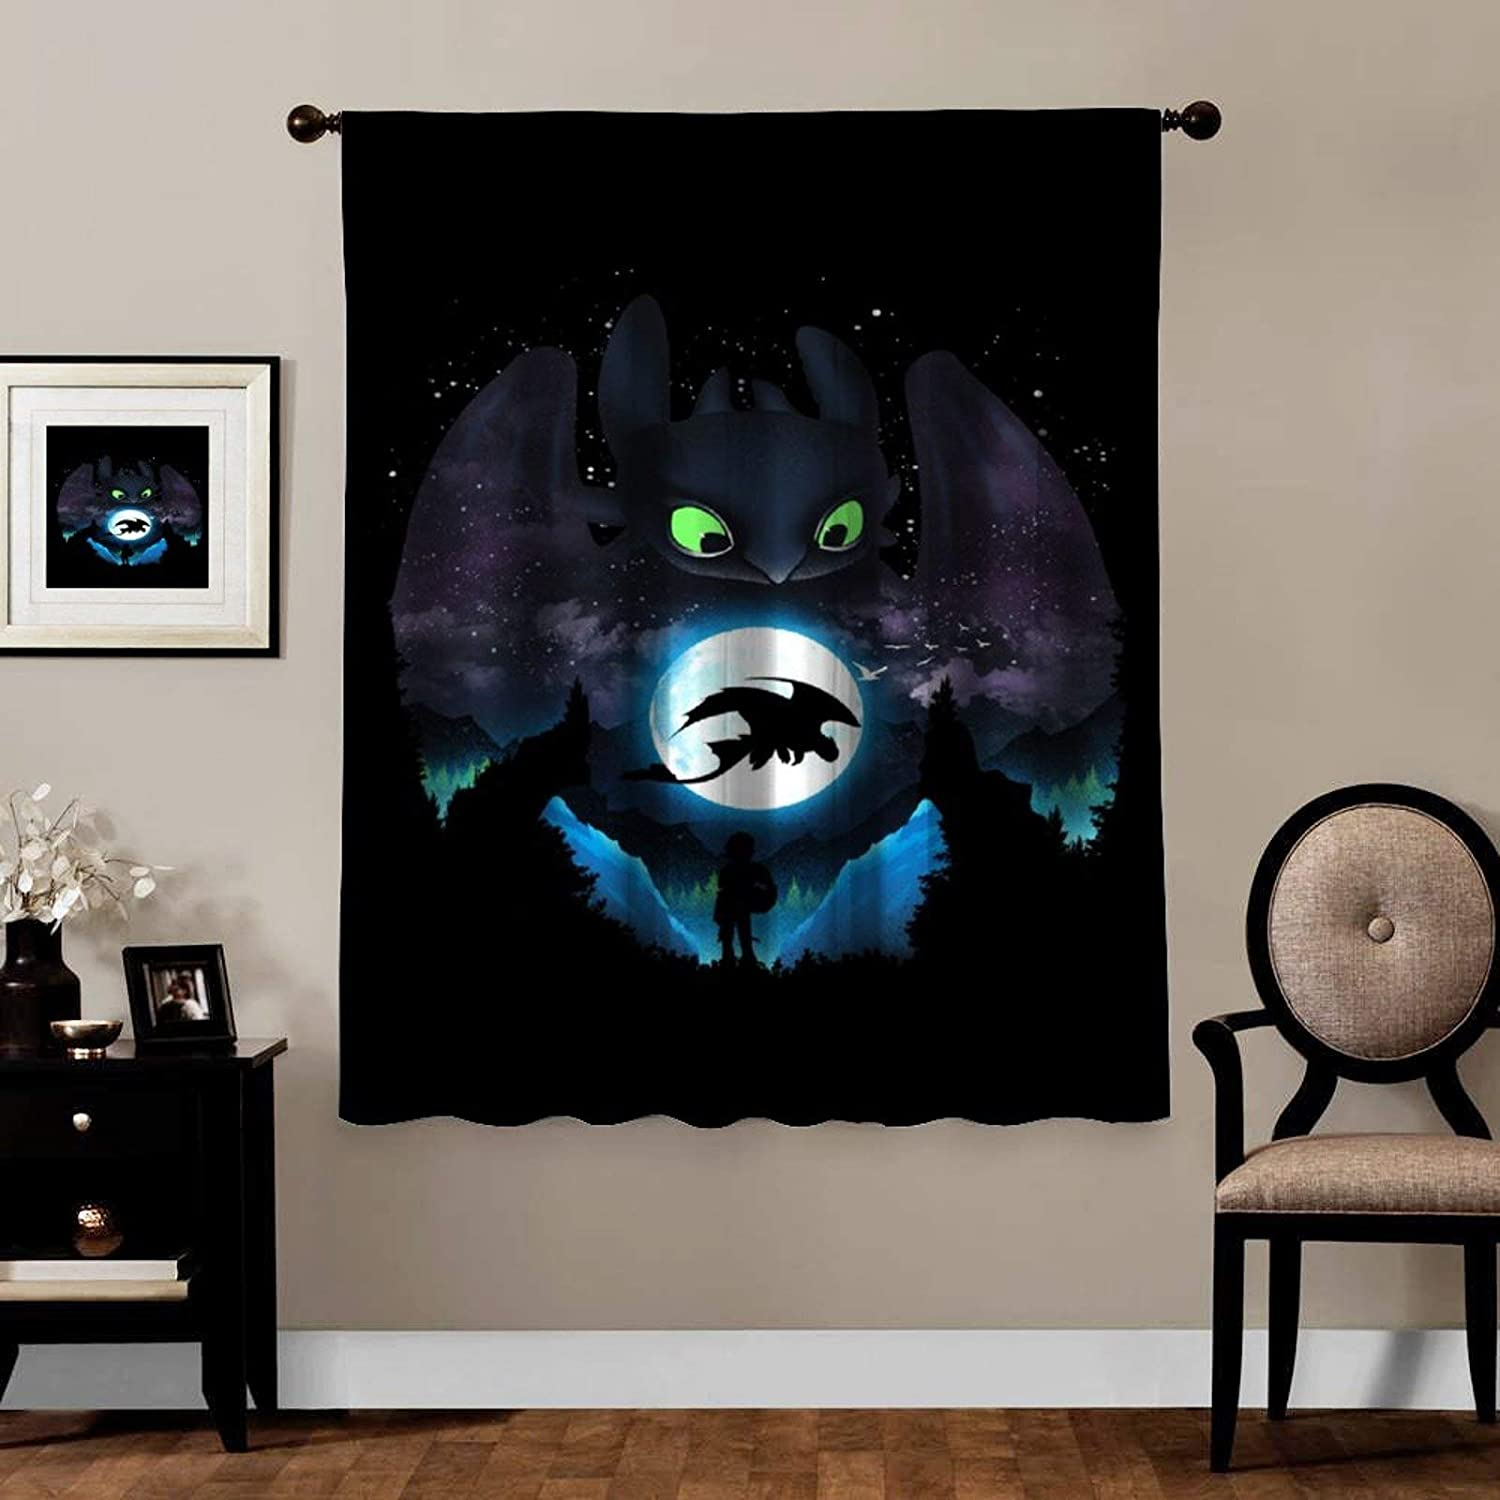 Anime Blackout Curtains, Negative Adorable Dragon Toothless, Rod Pocket Thermal Insulated Darkening Window Drapes for Bedroom, Cute Animal Boys Girls Room Décor, 1 Panels,84x84 inch